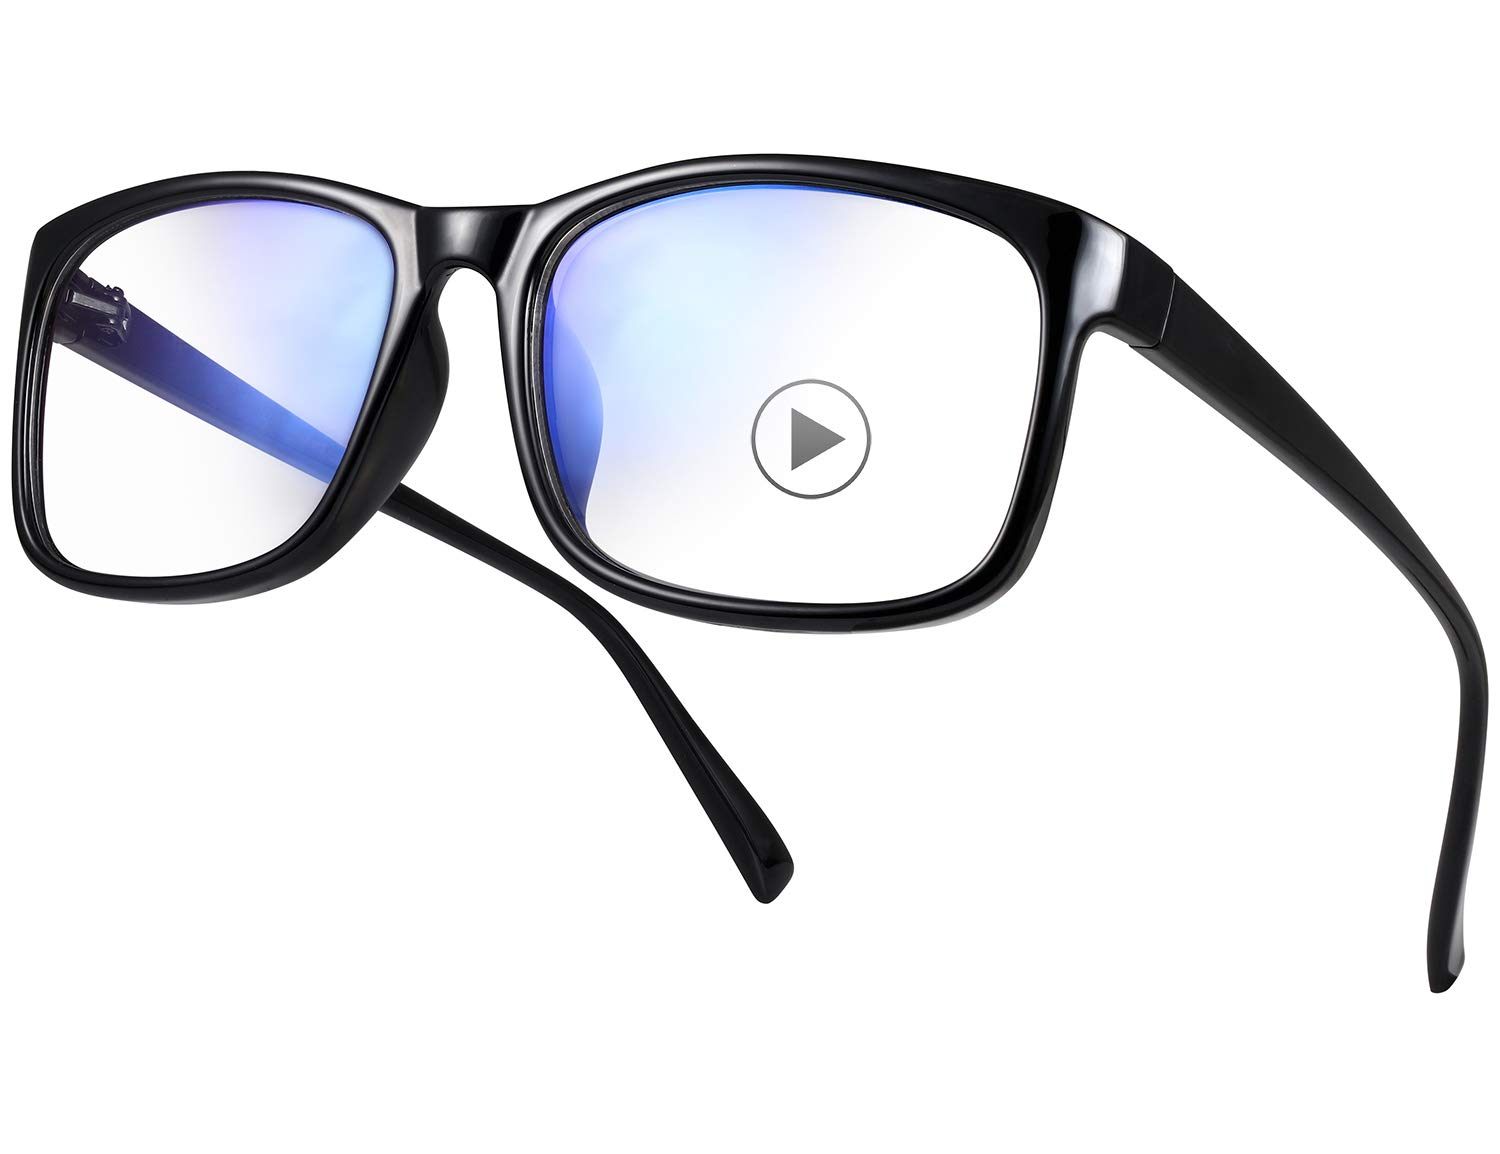 In Glassesamp; Rated Light Blocking Best Computer Helpful Blue oeCxWrBd